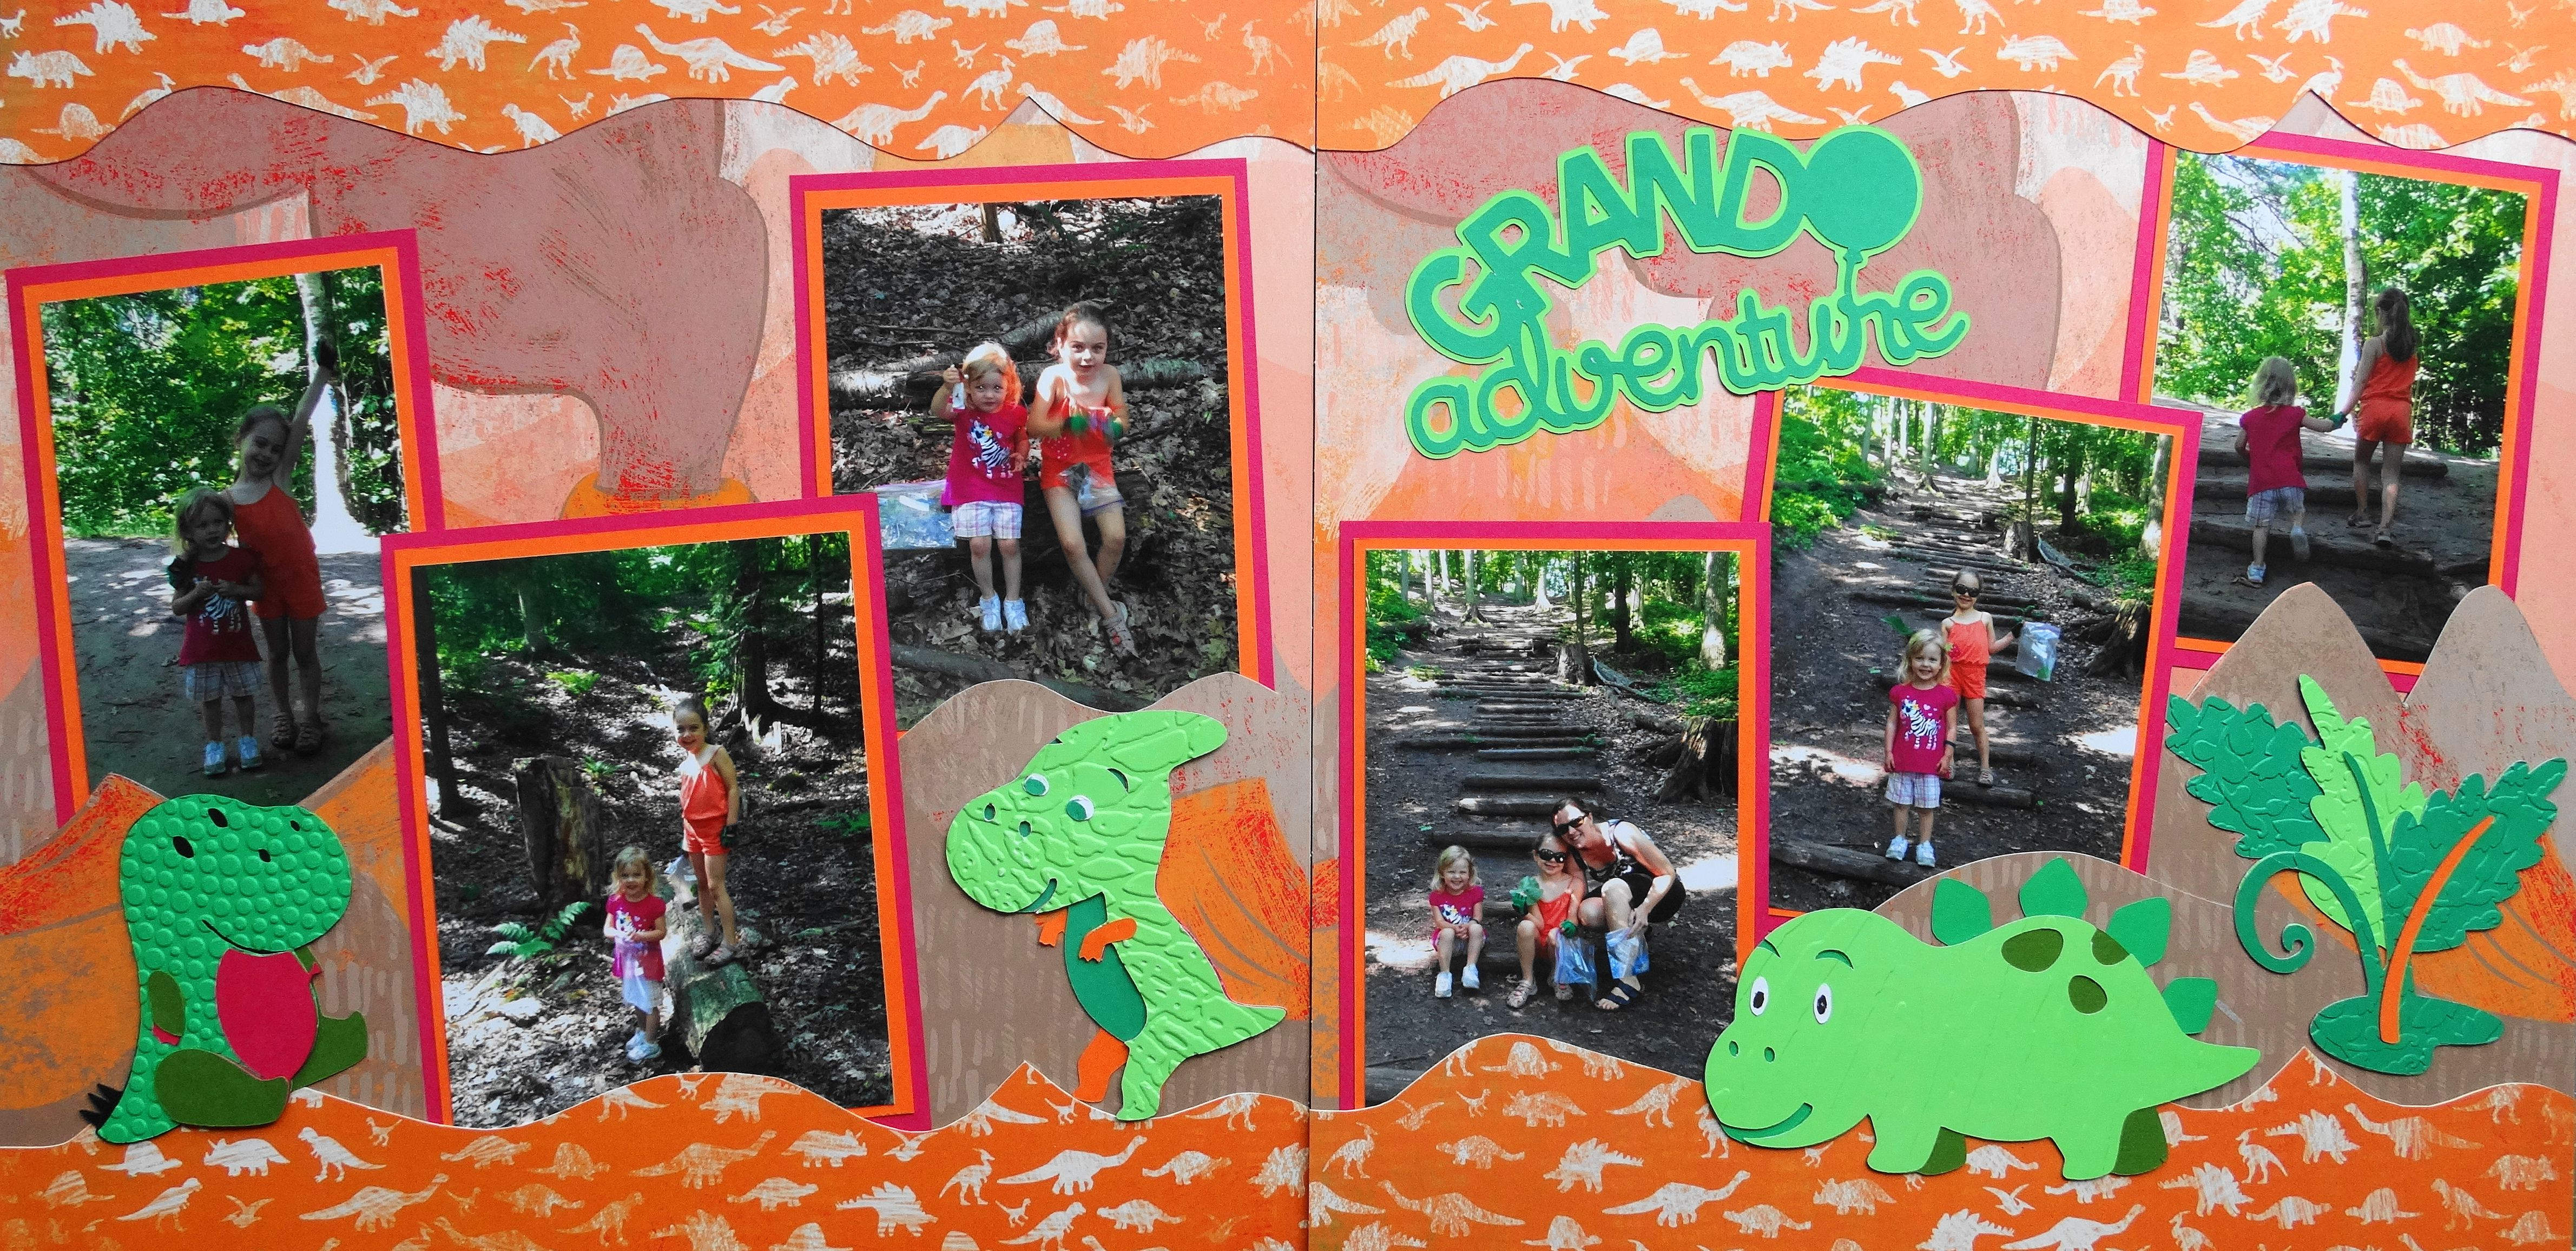 Scrapbook ideas adventure - Scrapbook Page A Grand Adventure 2 Page Kiwi Lane Layout With Plants And Dinosaurs From